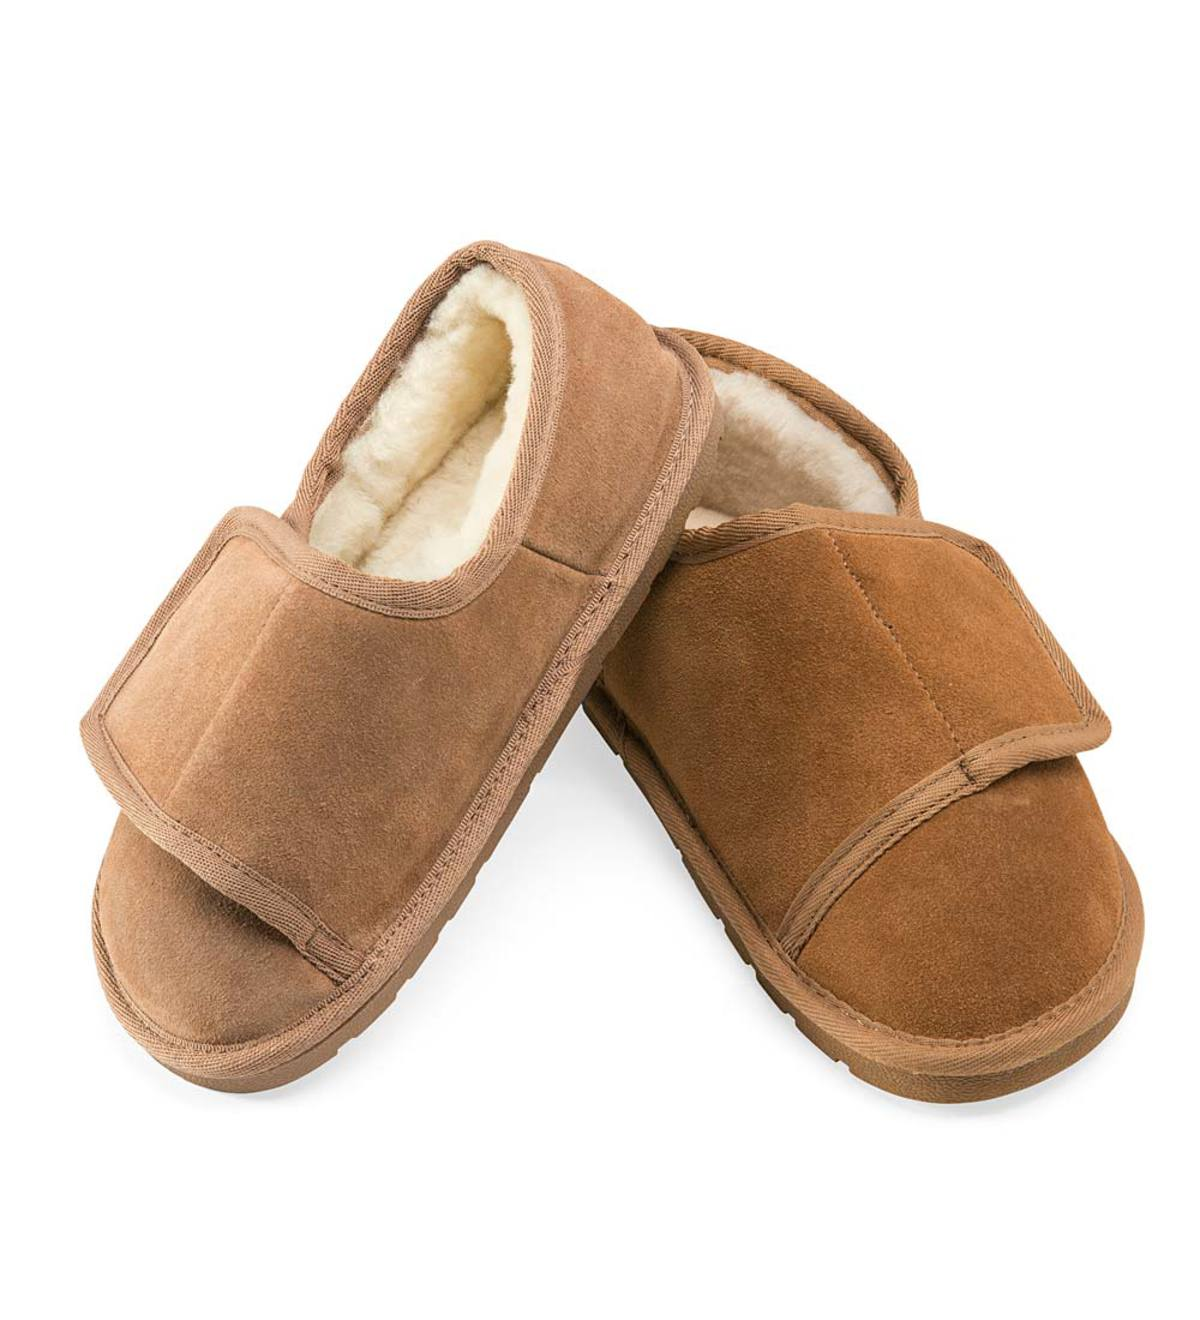 Sheepskin Wrap Bootie Slippers for Women